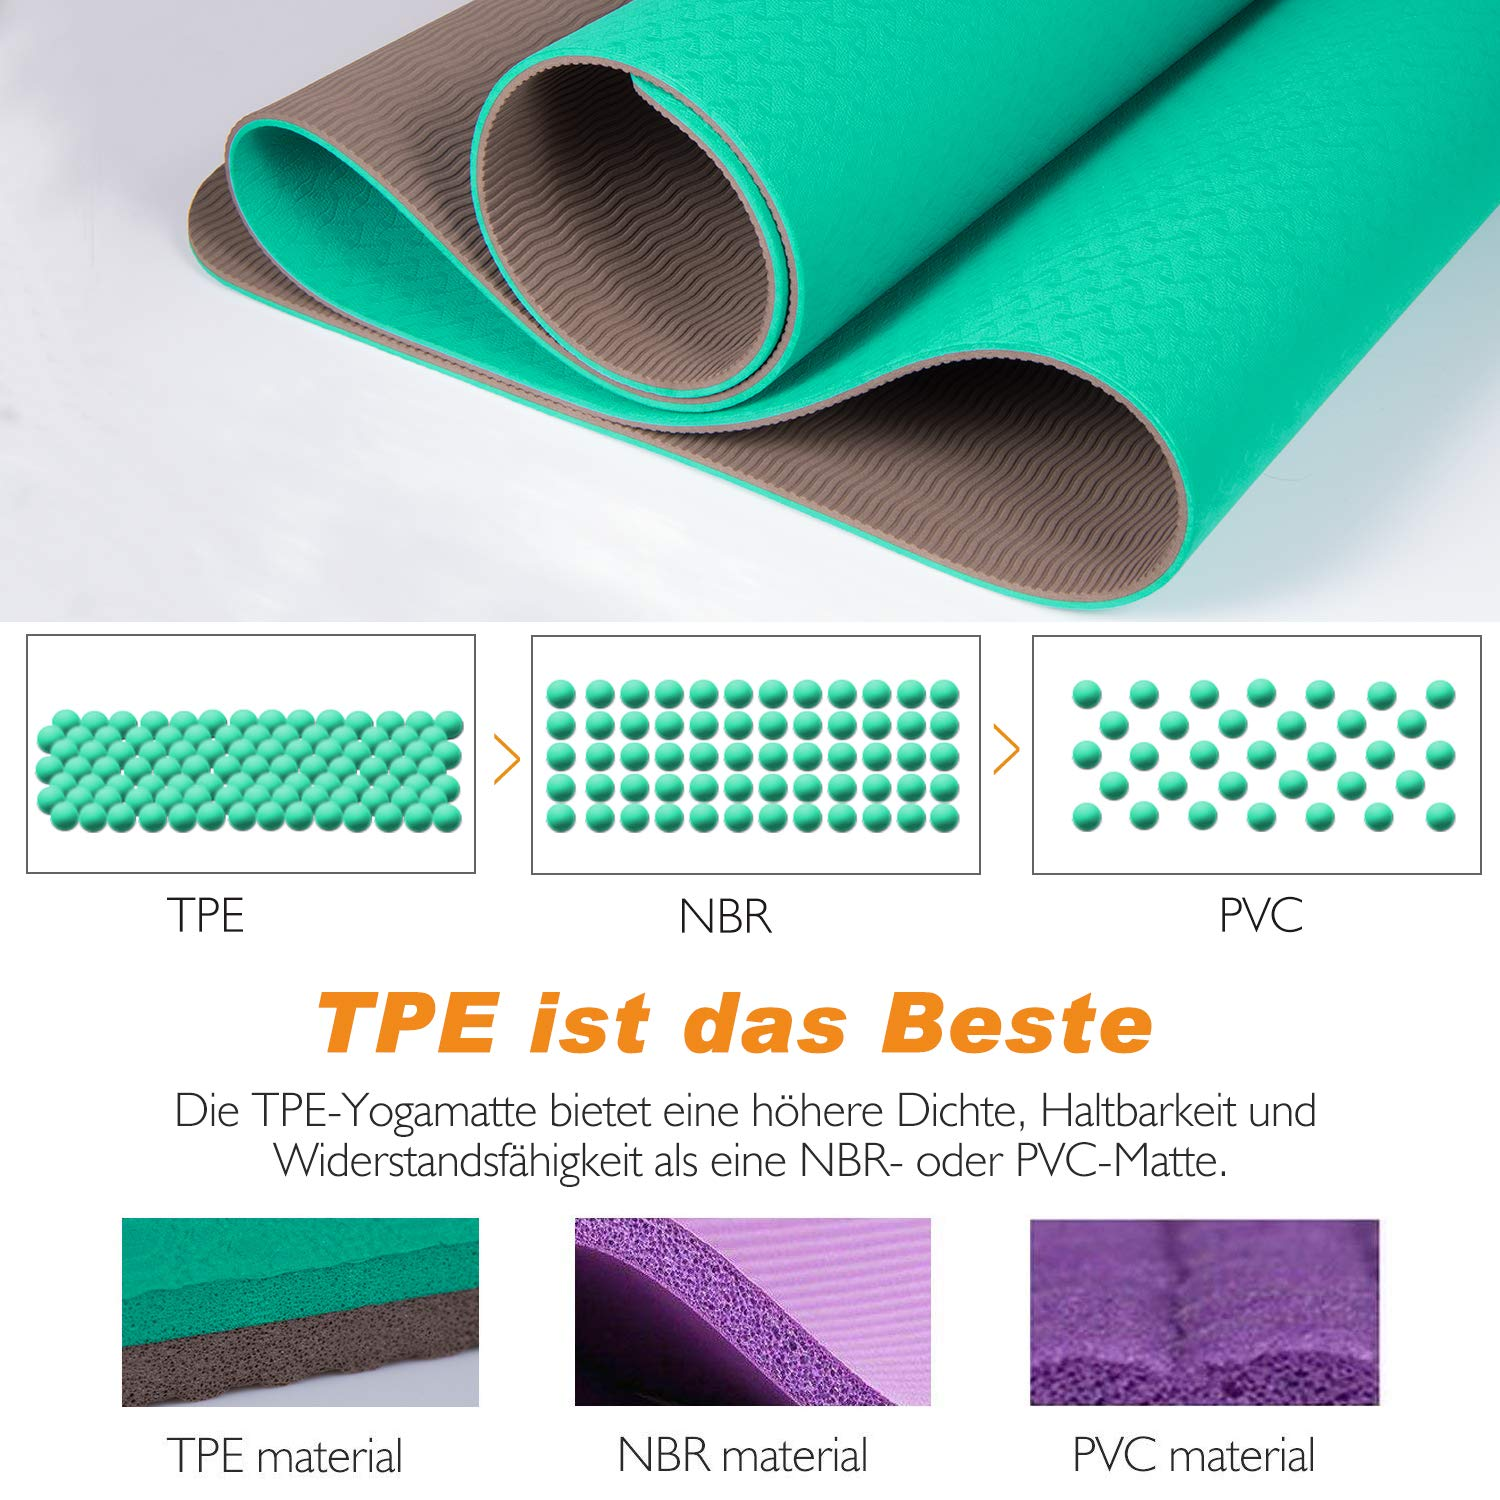 TOPLUS Yoga Mat, 1/4 inch Pro Yoga Mat TPE Eco Friendly Non Slip Fitness Exercise Mat with Carrying Strap-Workout Mat for Yoga, Pilates and Floor Exercises (Green) by TOPLUS (Image #5)